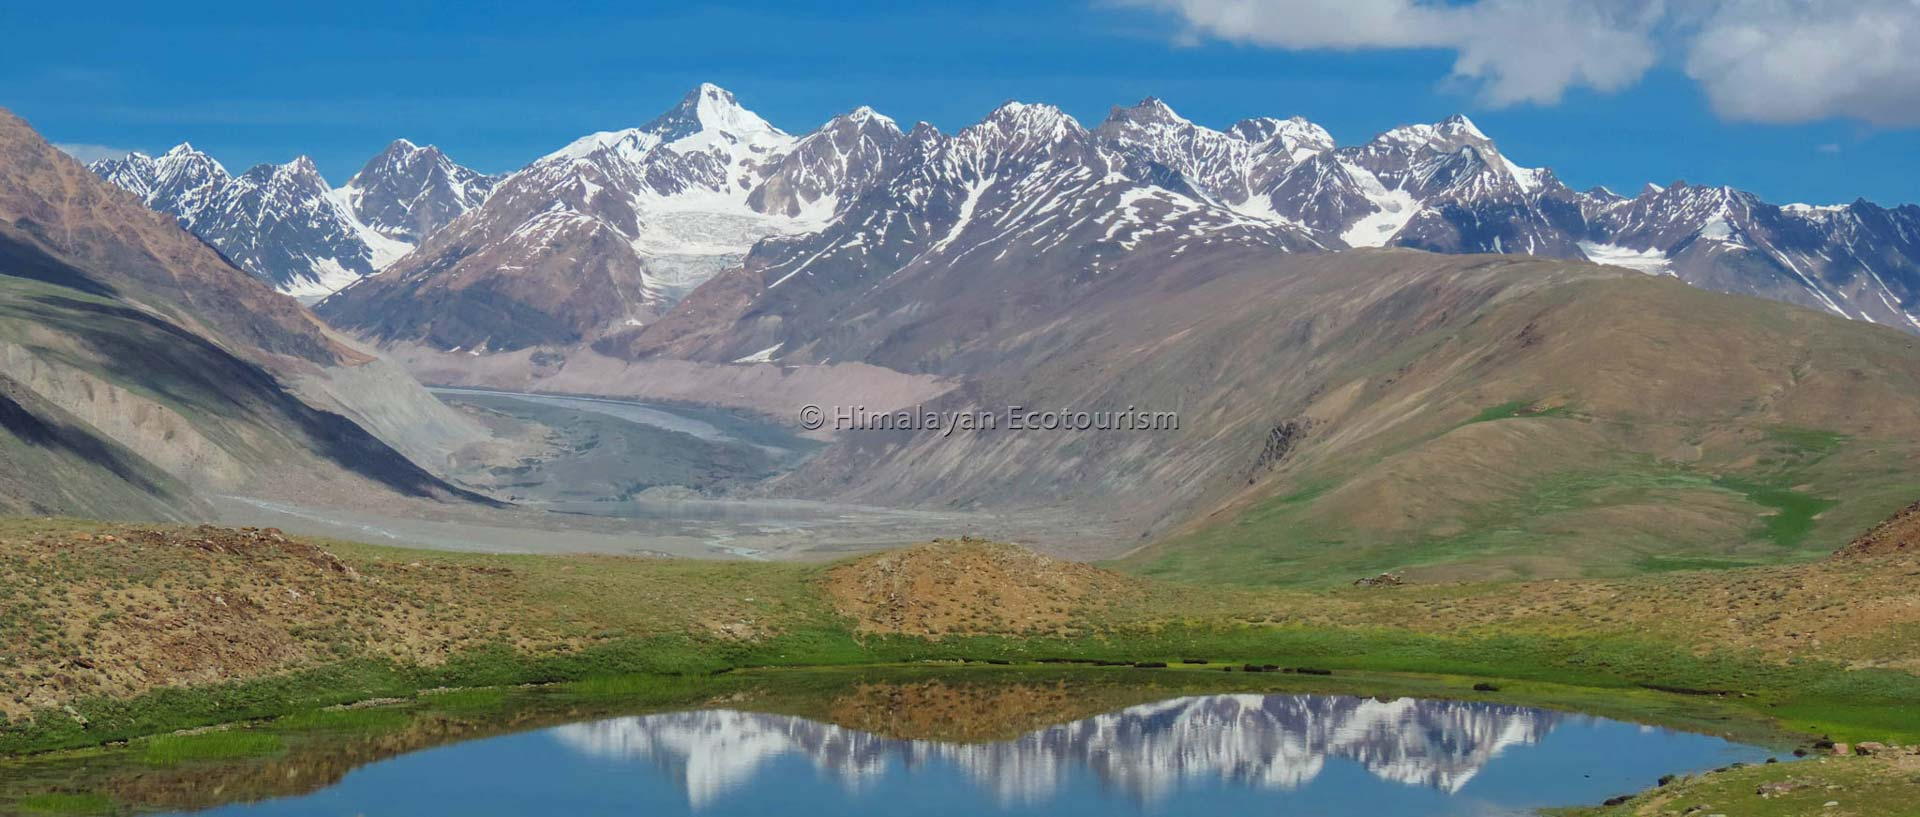 Chandratal lake, Spiti valley